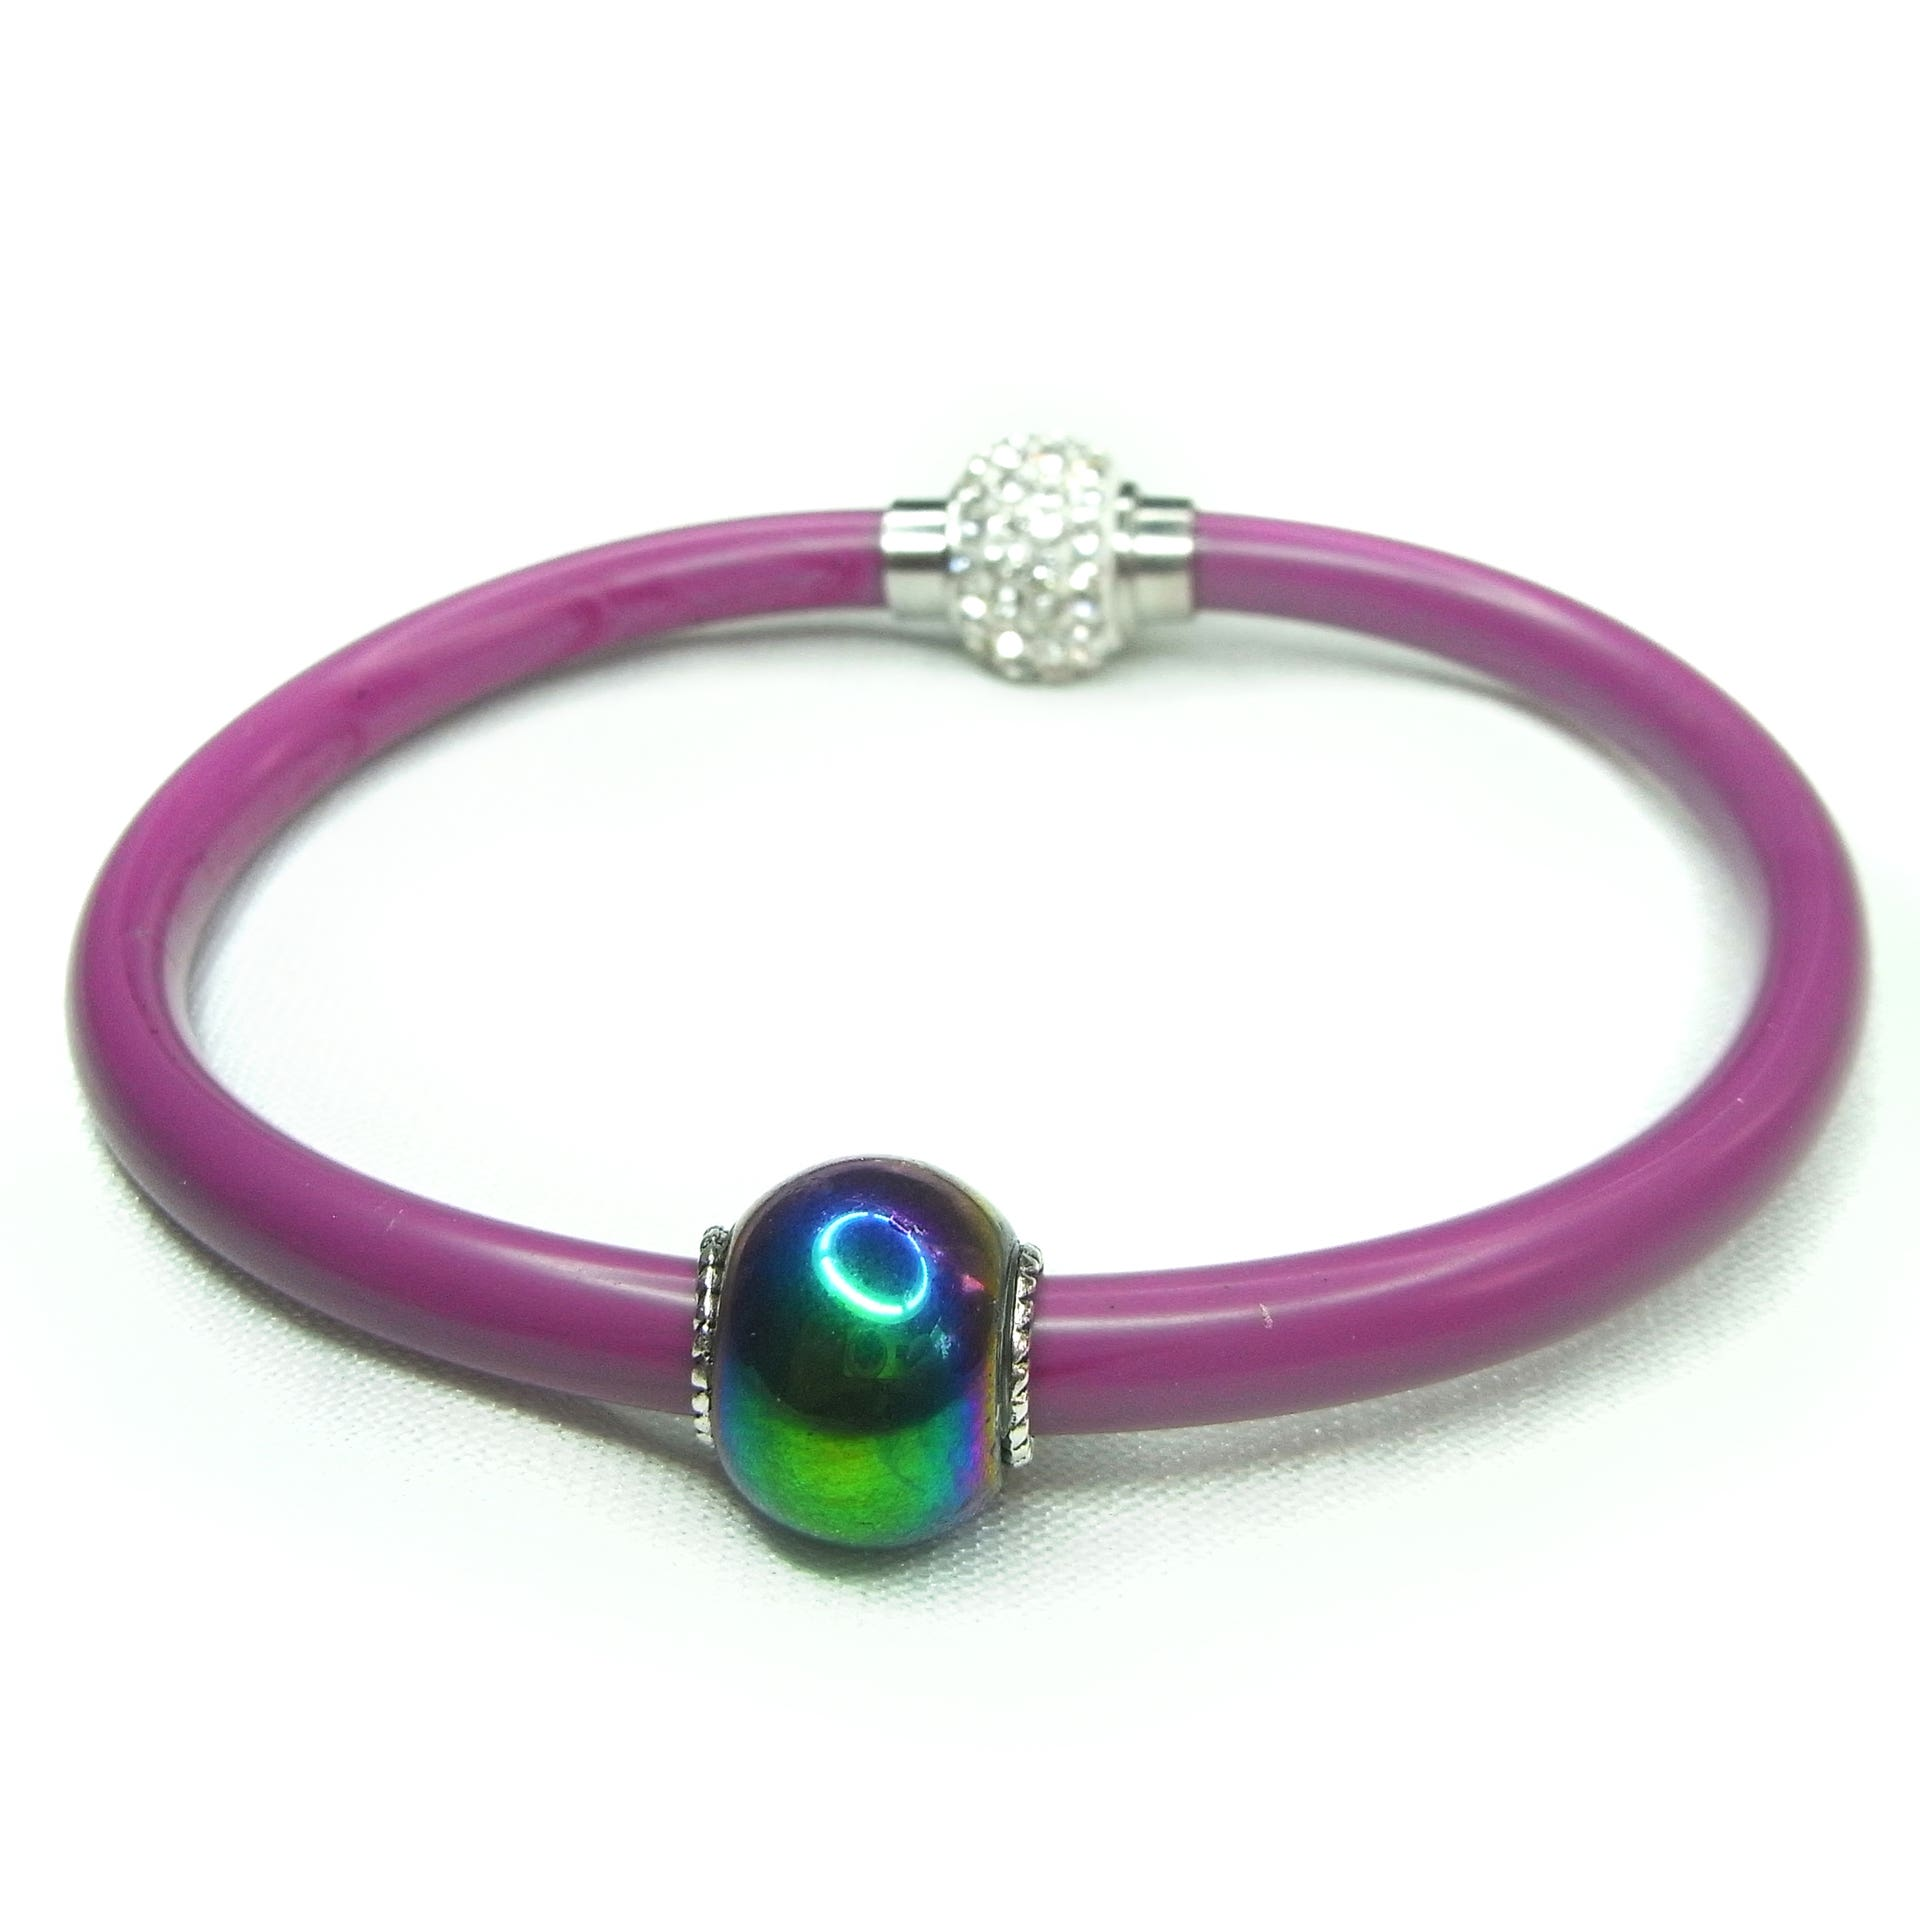 Royal purple resin bracelet with vitrail coloured bead and sparkly crystal encrusted clasp.